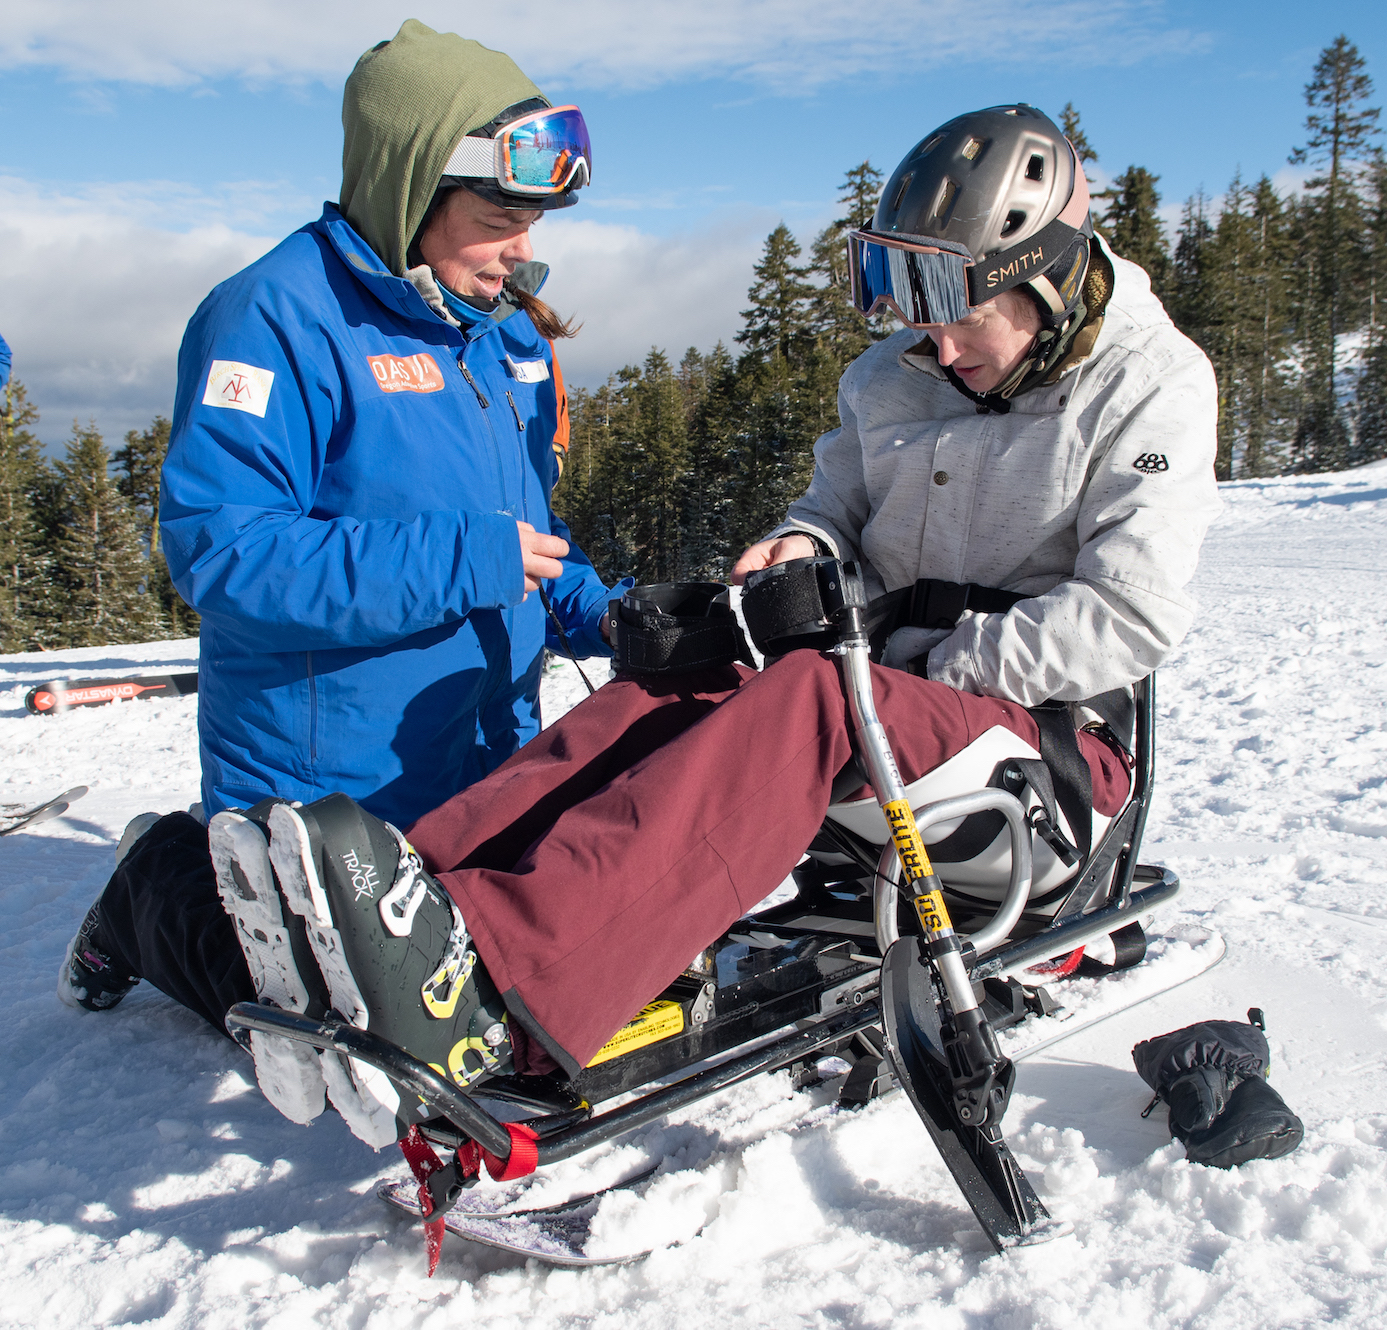 sit skier buckling herself into the bi ski with instructor lisa at her side